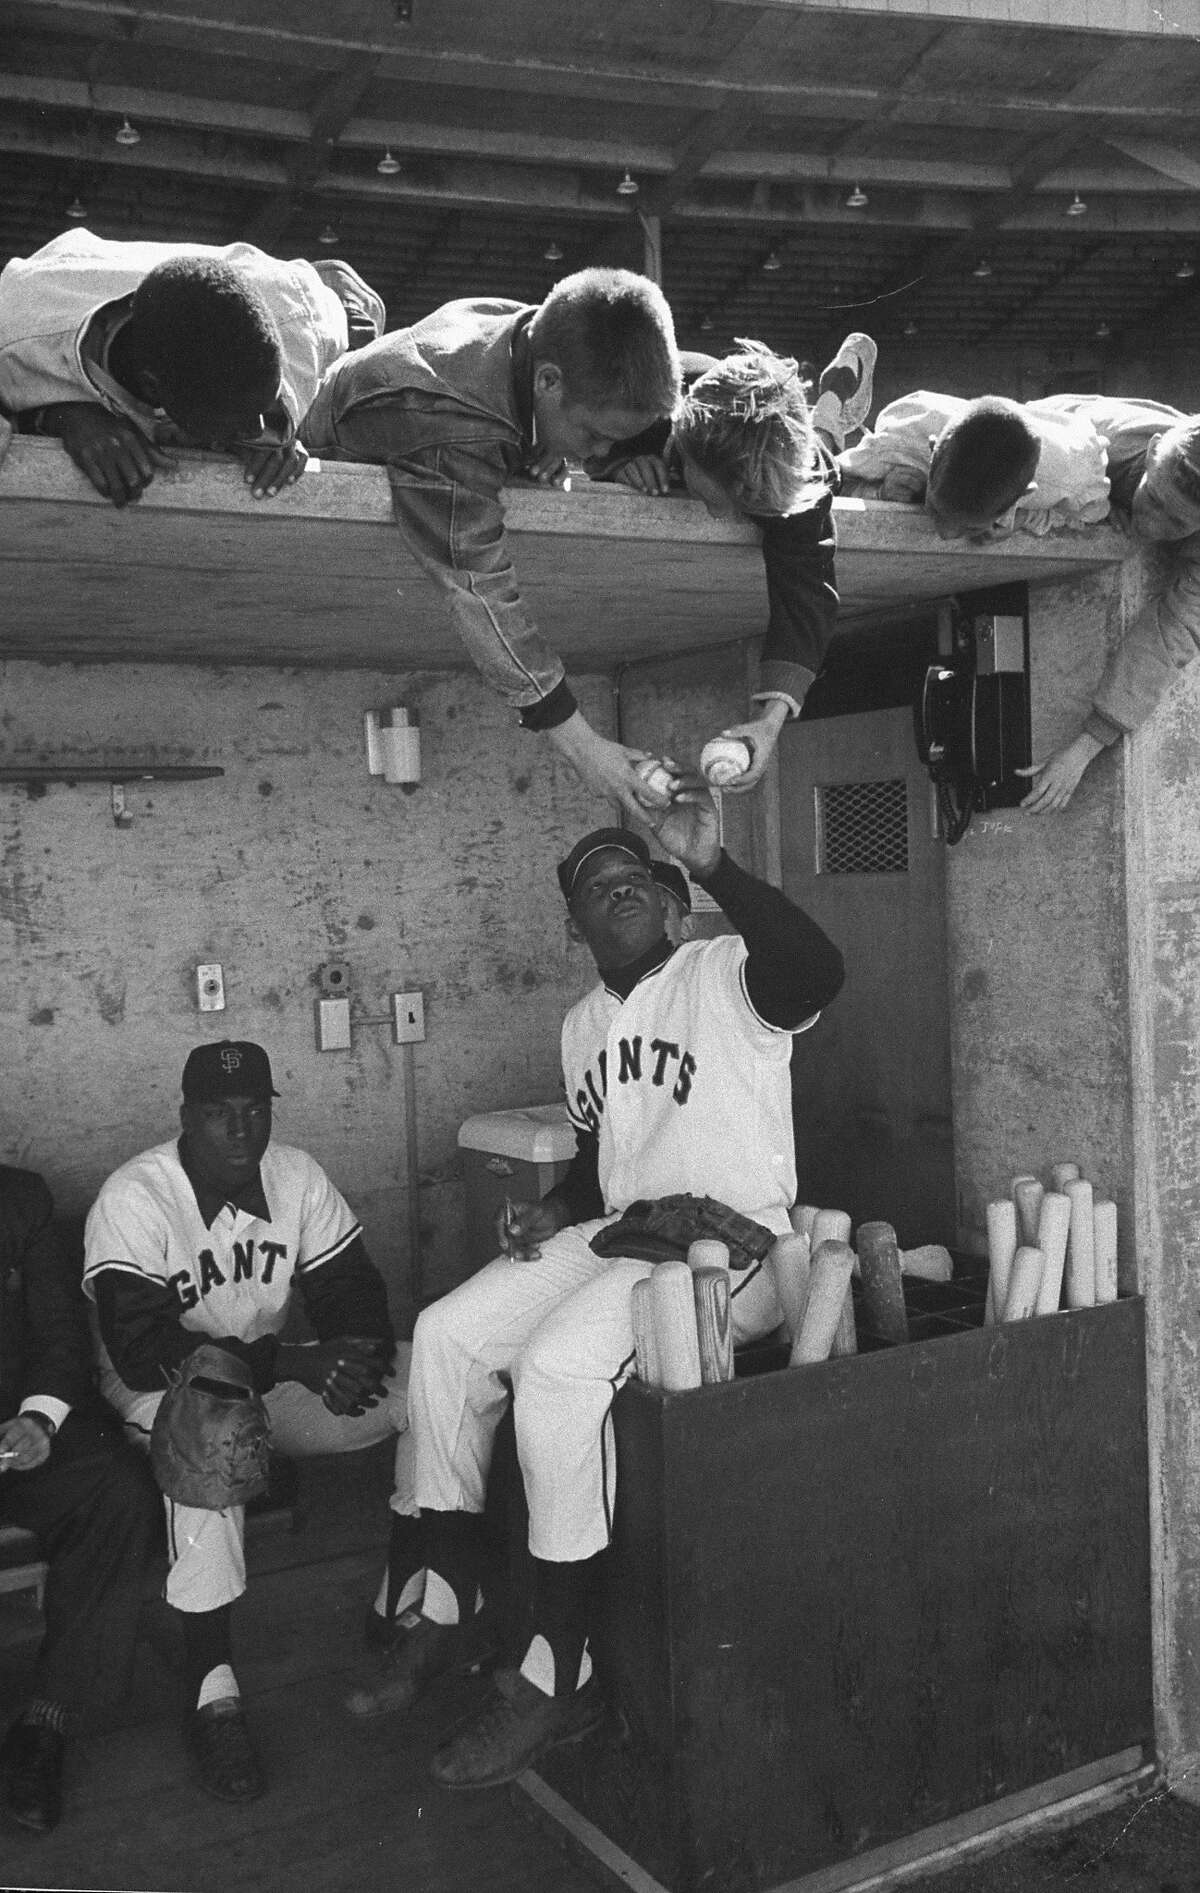 Giants baseball players Willie Mays (seated R) and Willie McCovey (seated L) in dugout of new Candlestick stadium. (Photo by Jon Brenneis//Time Life Pictures/Getty Images)